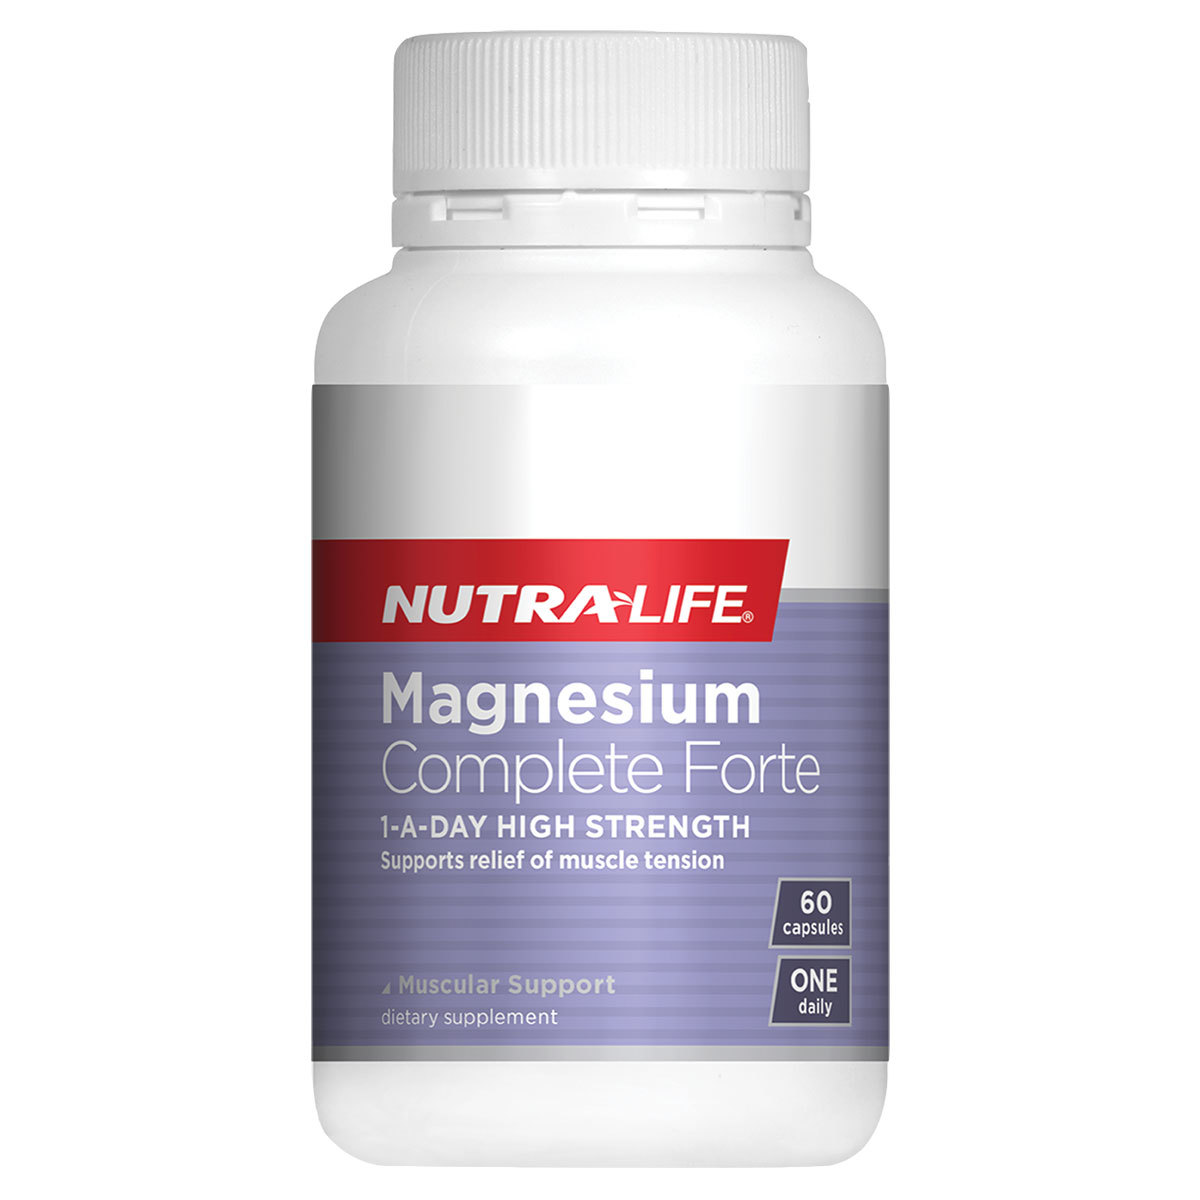 Nutra-Life Magnesium Complete Forte